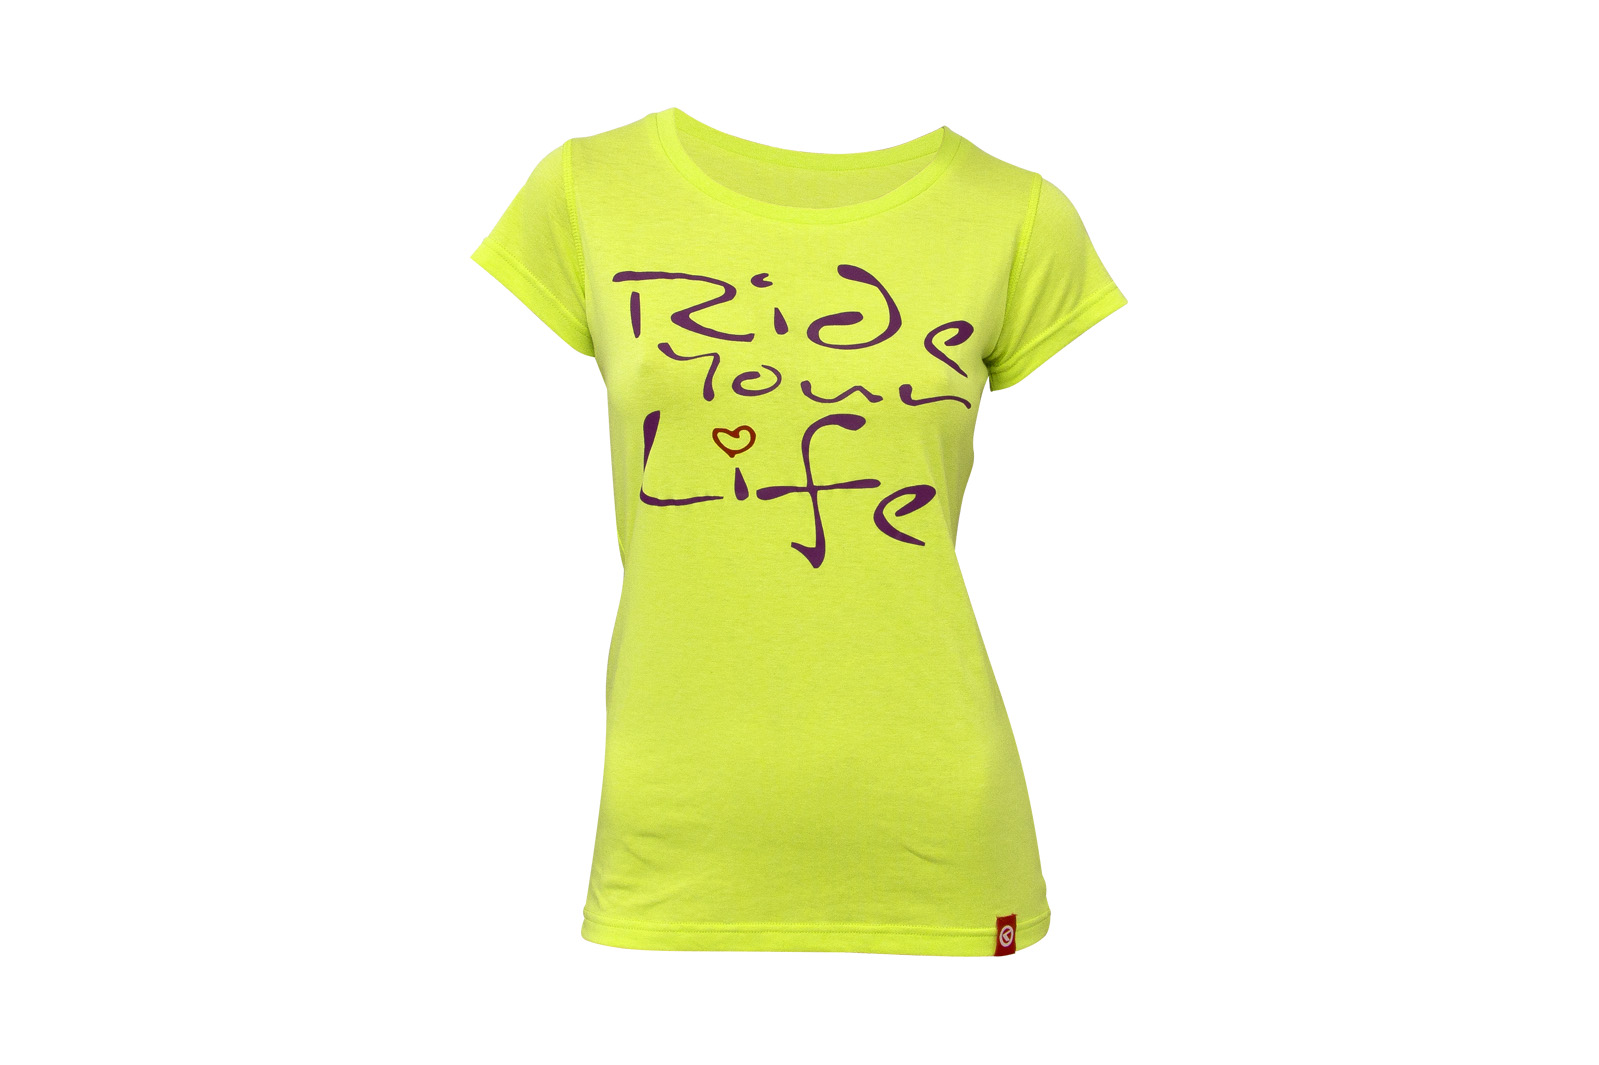 T-Shirt KELLYS WOMEN´S RIDE YOUR LIFE kurzarm Lime - XL - T-Shirt KELLYS WOMEN´S RIDE YOUR LIFE kurzarm Lime - XL